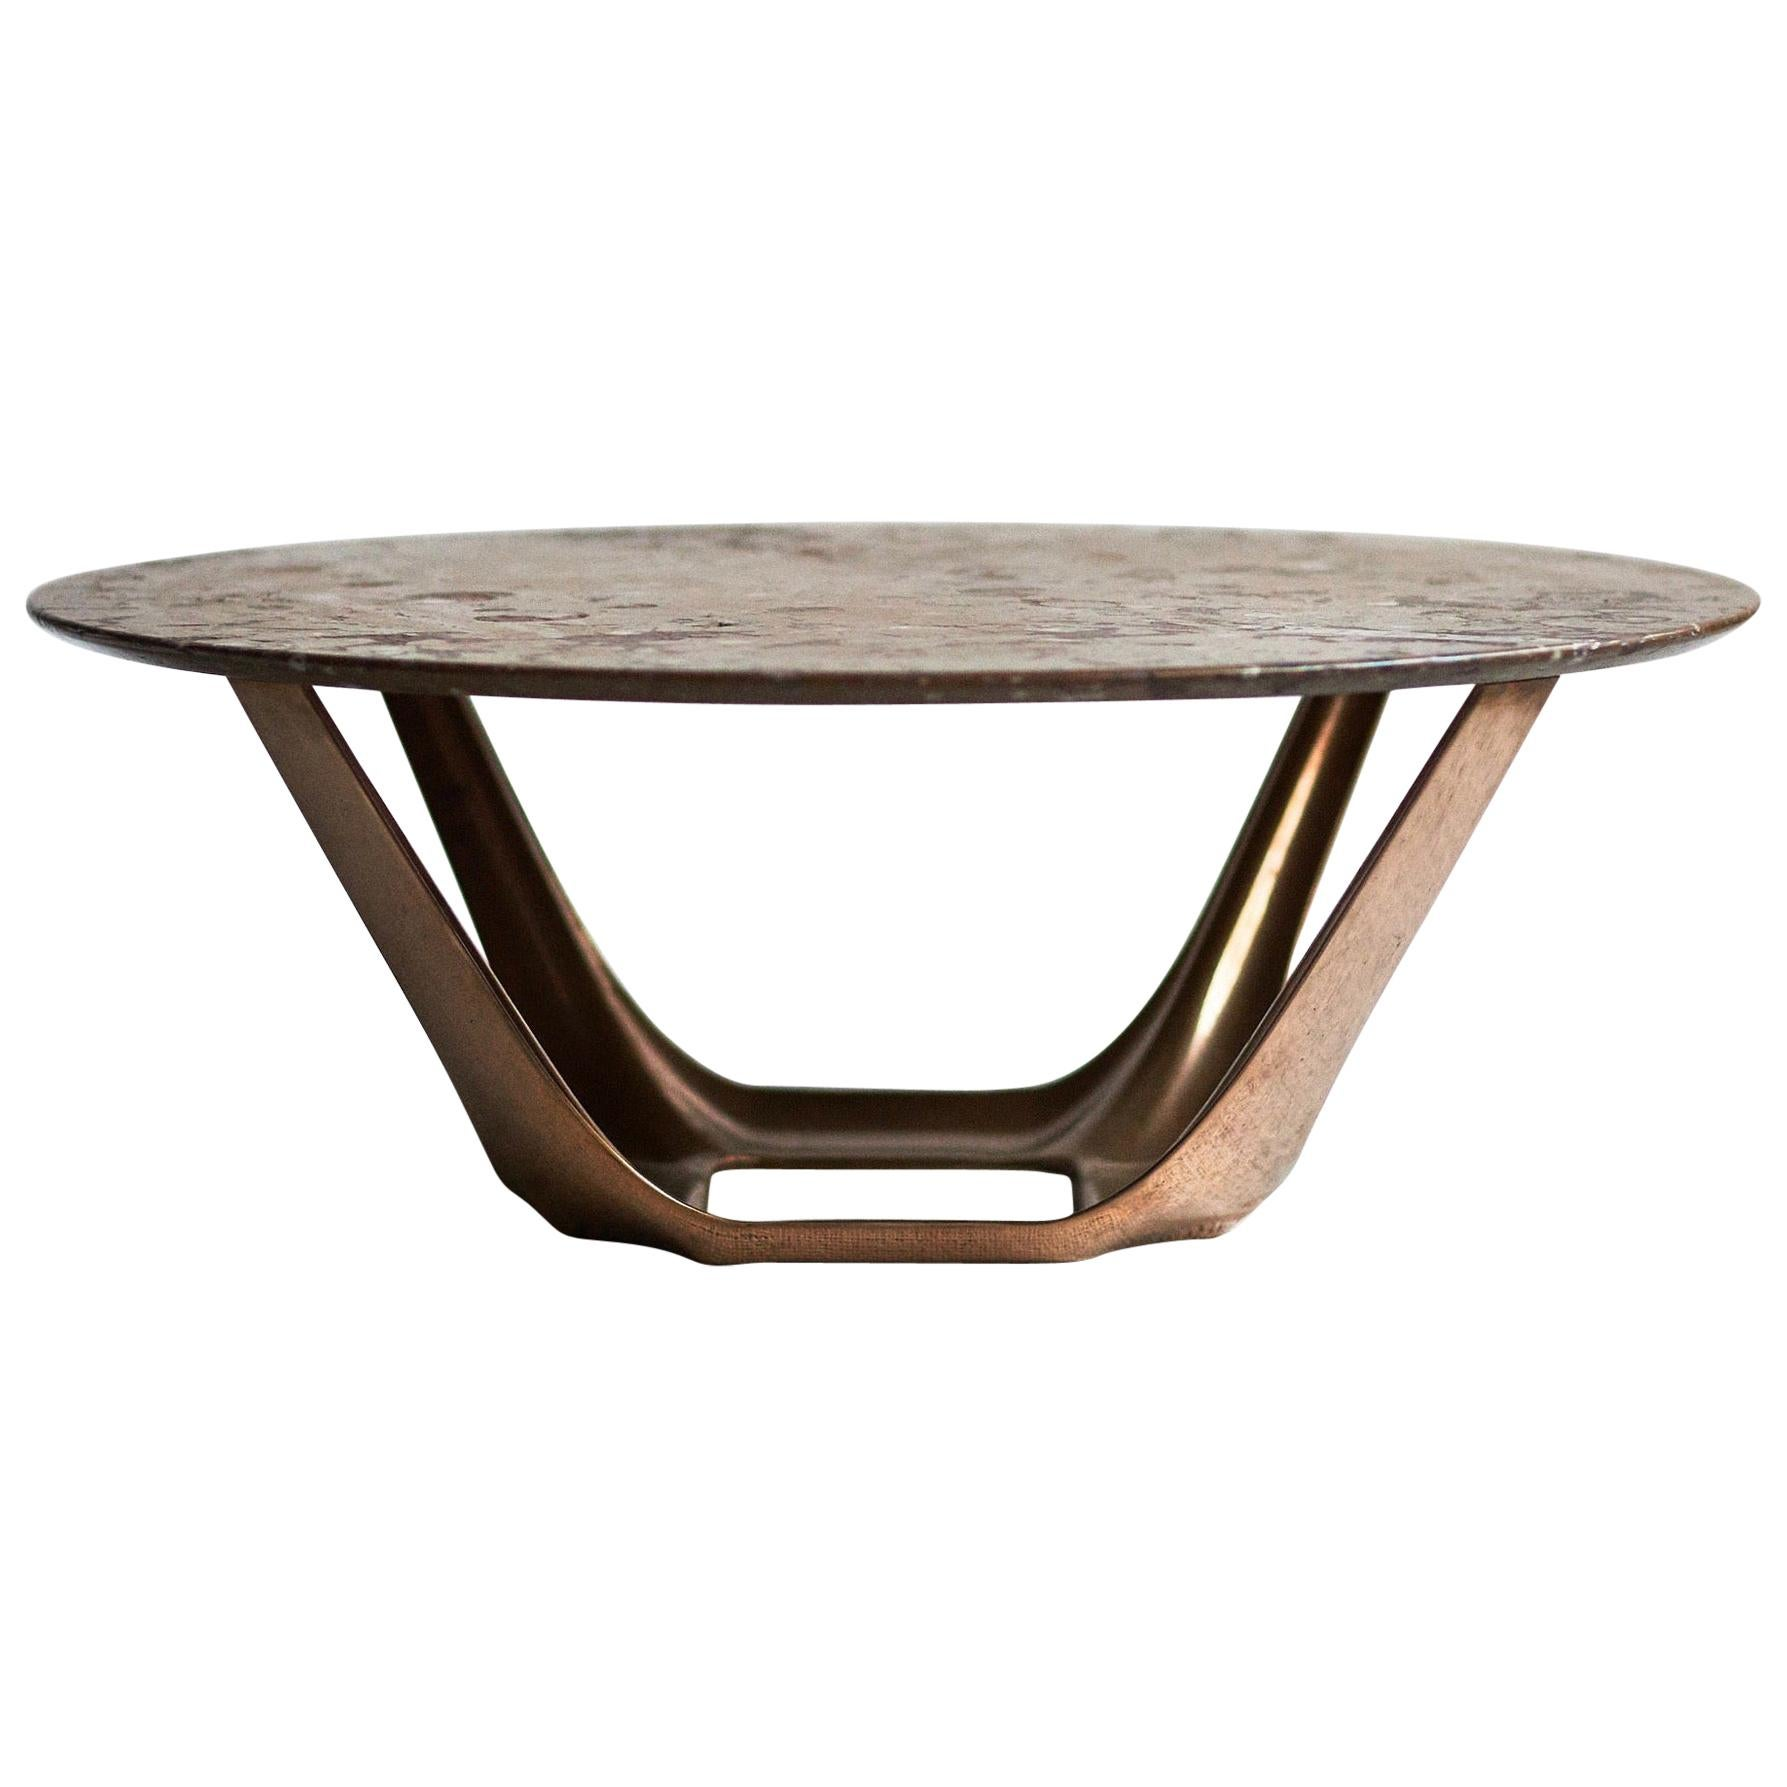 Barbera Heron Round Coffee Table, Modern Solid Bronze Base with Stone Top